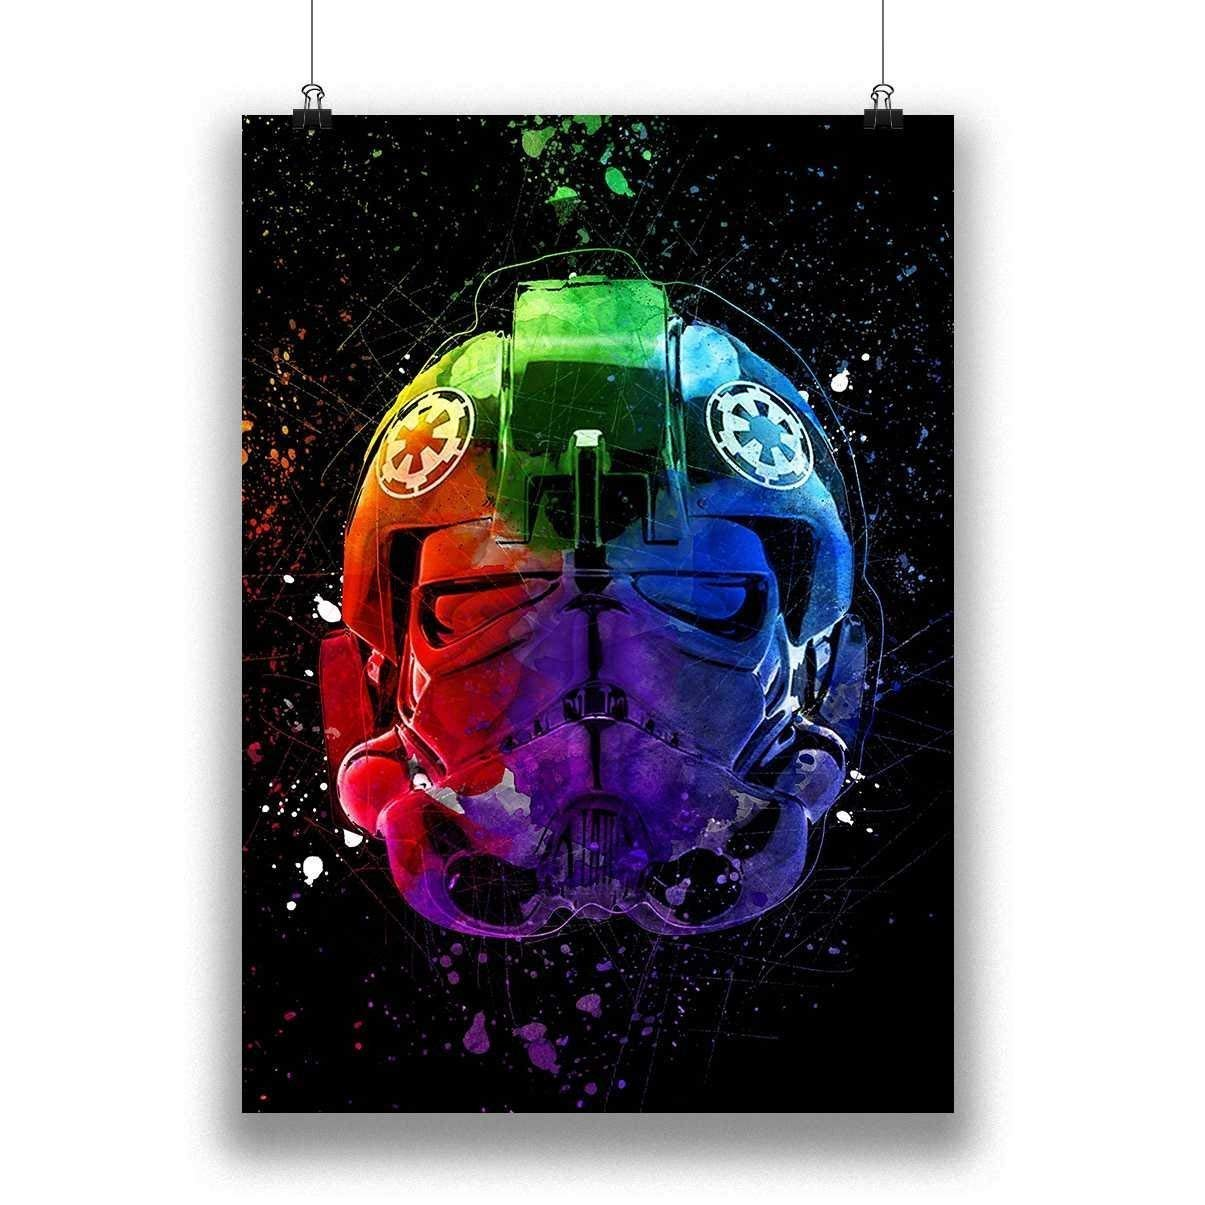 Star Wars Helmet Movie Poster Abstract TIE Fighter Painting Star Wars Poster Movie Giclee Wall Art Prints